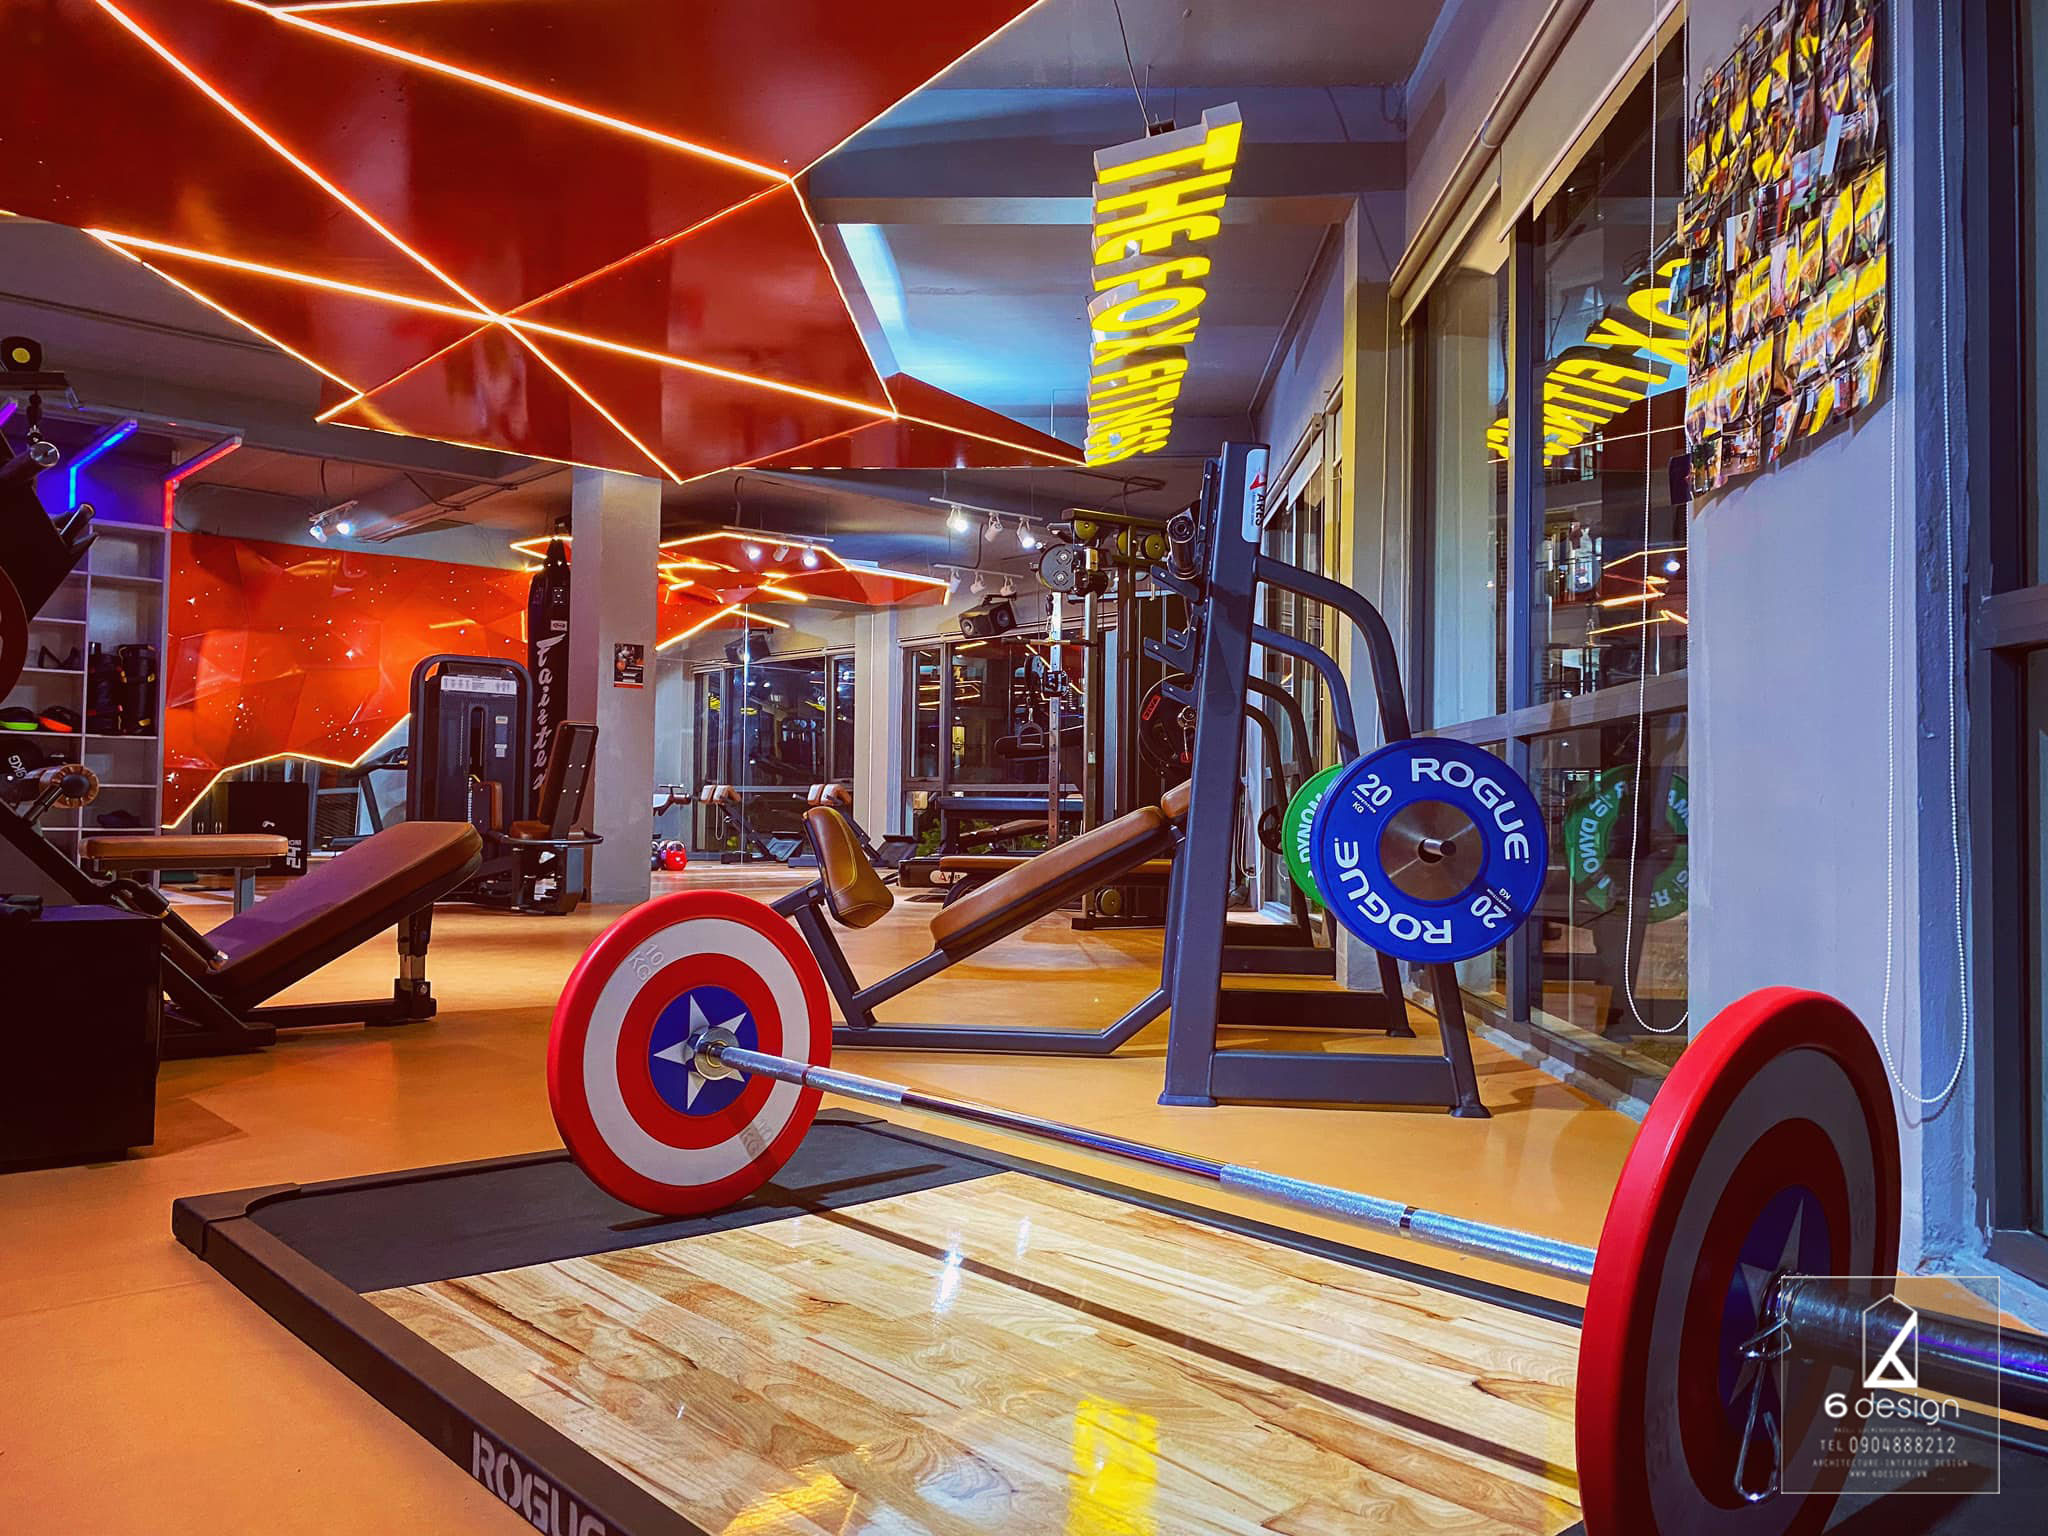 thi-cong-phong-gym-the-fox-fit-ness-time-city-doc-dao-nhat-viet-nam